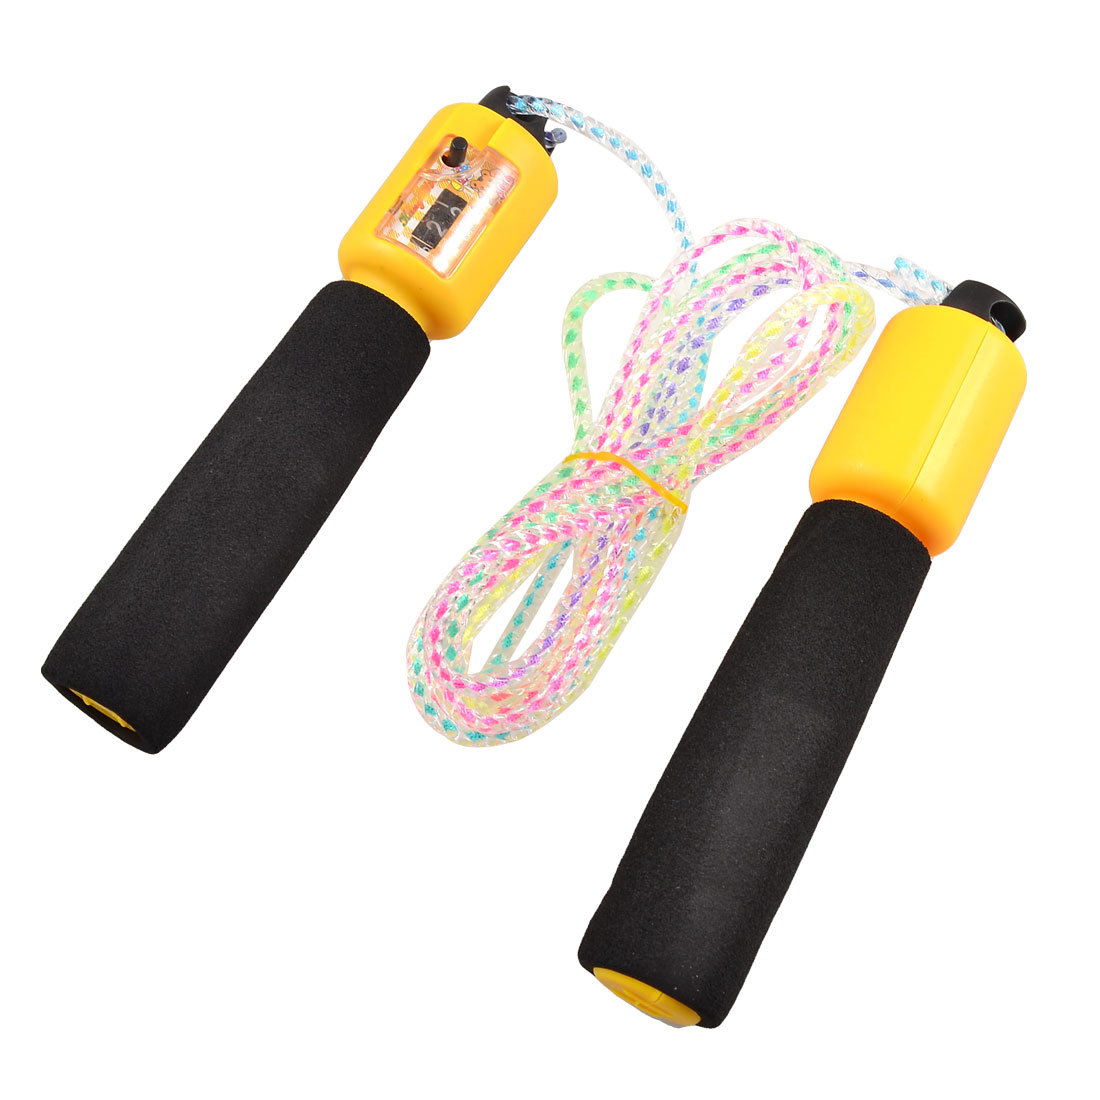 Gym Fitness Exercise Black Yellow Antislip Handle Counter Skip Jump Rope 8.2 Ft